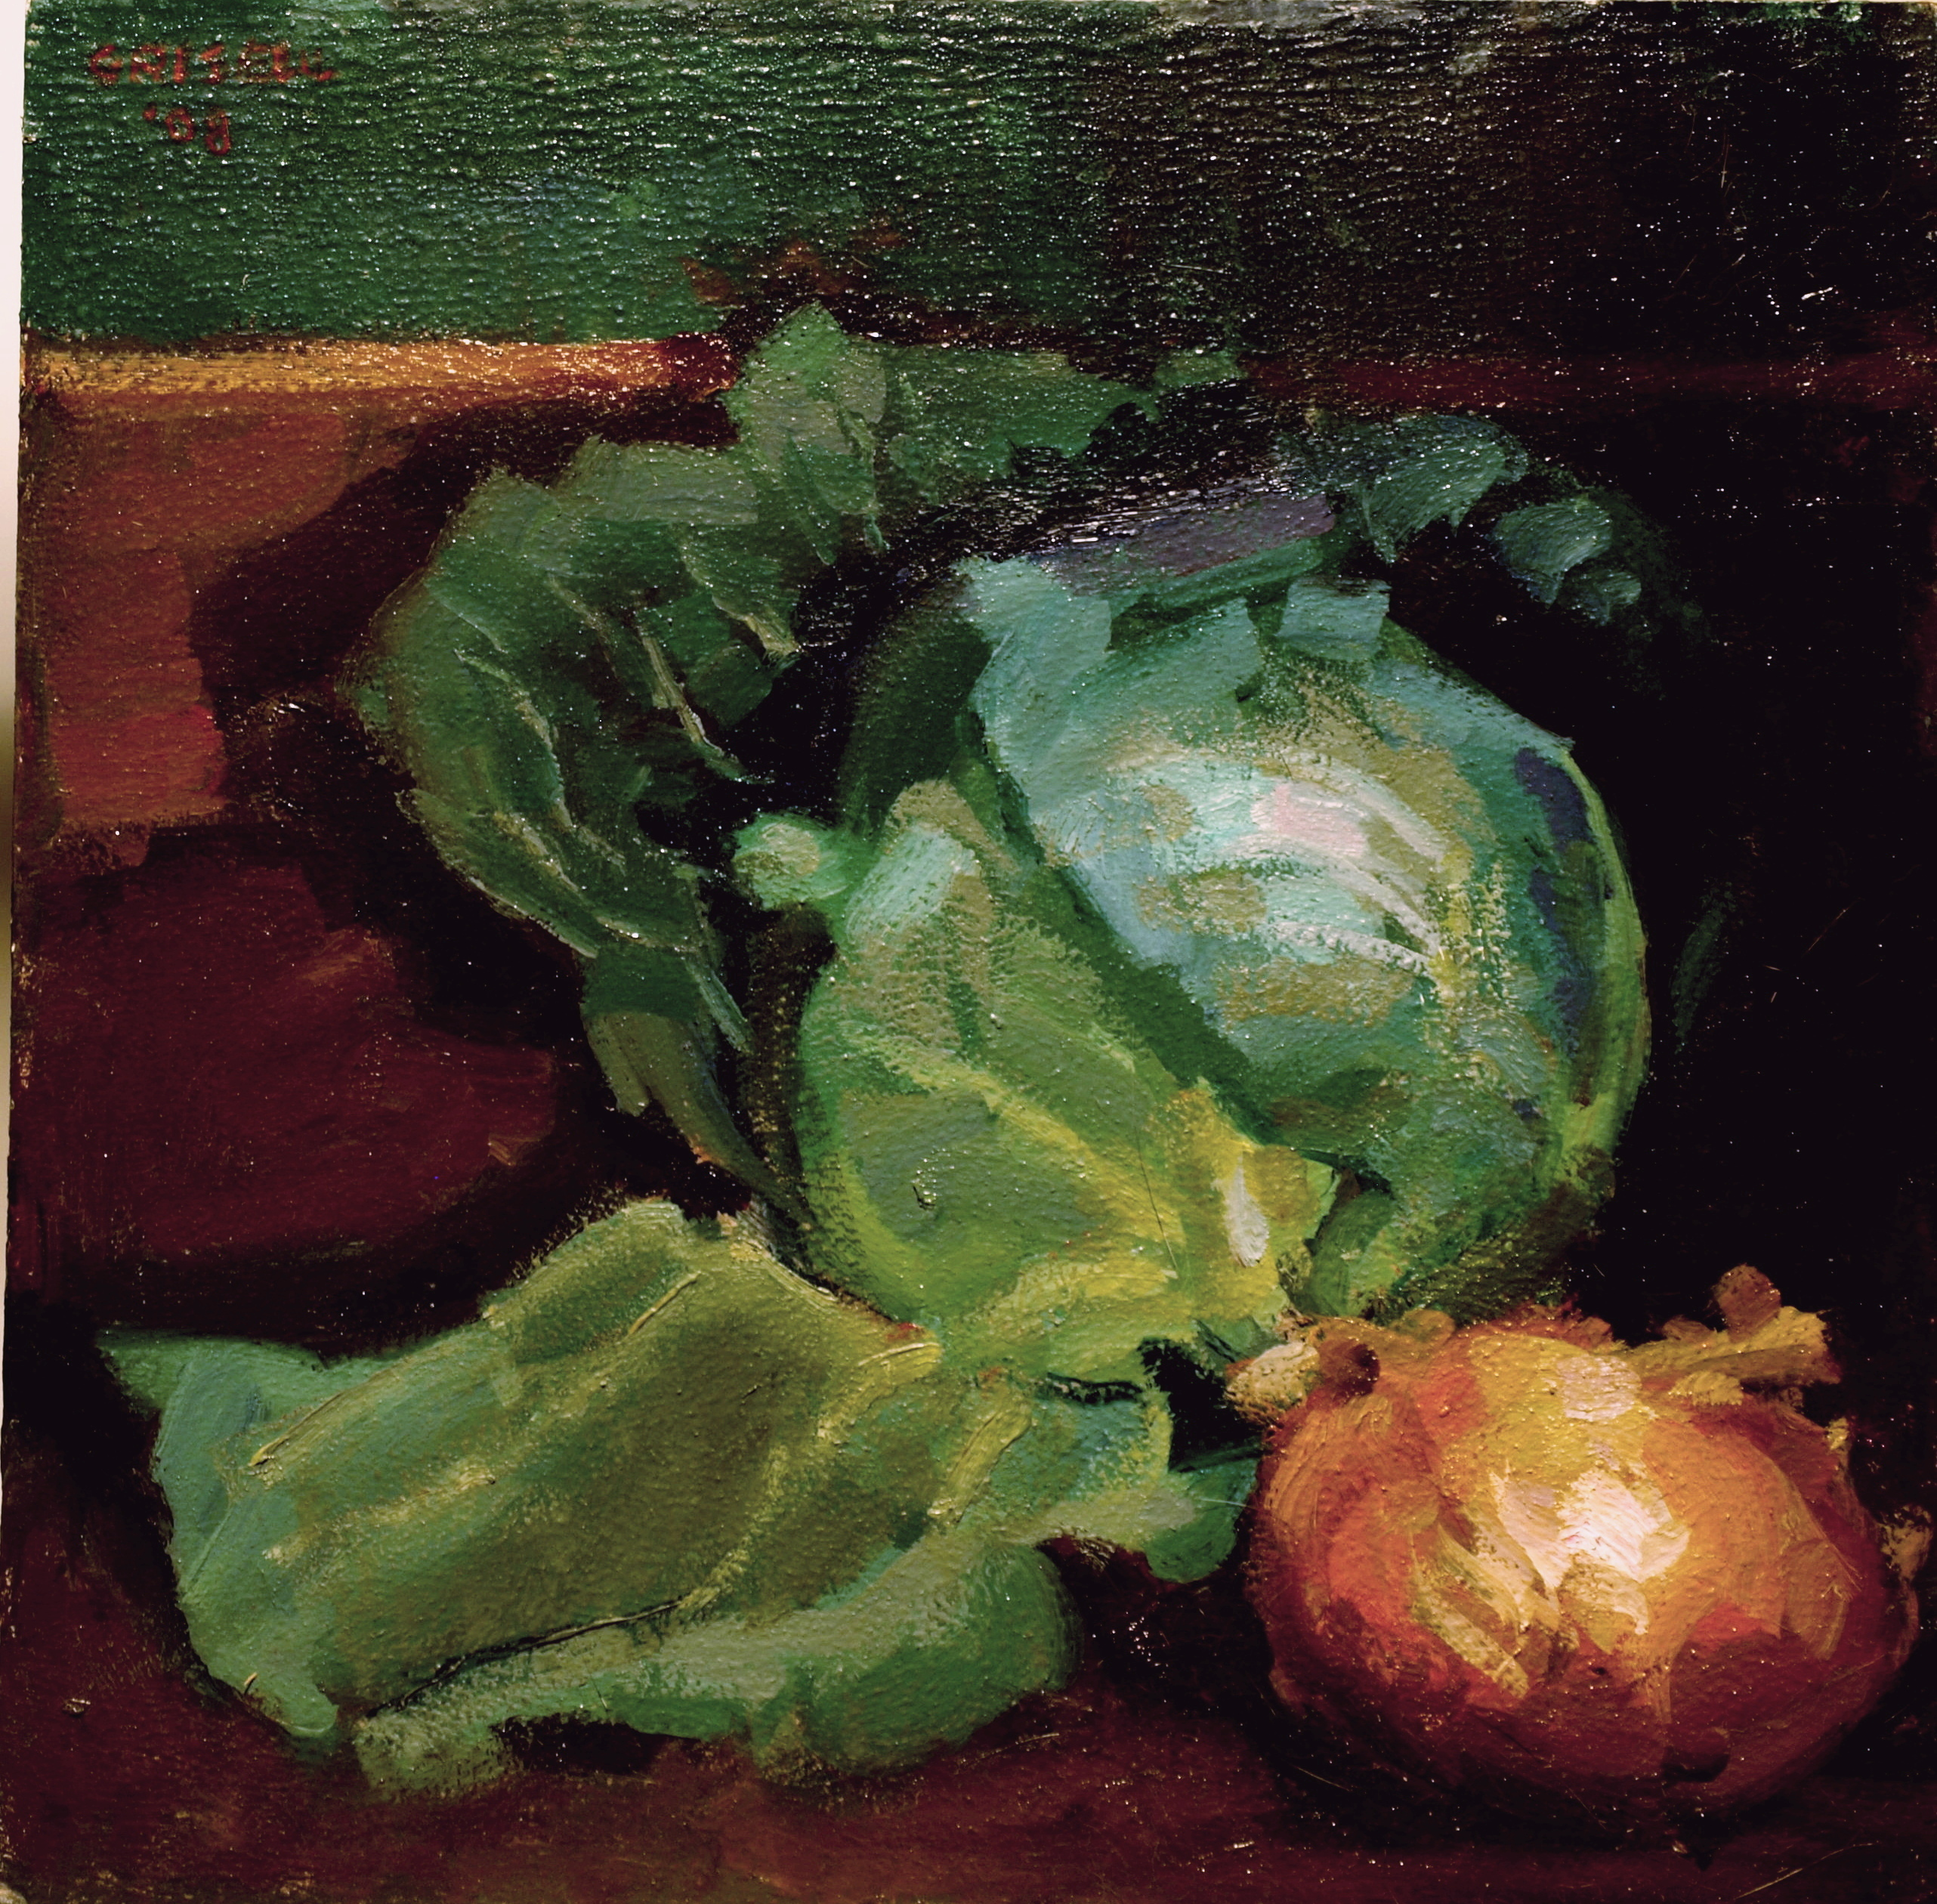 Cabbage and Onion, Oil on Panel, 12 x 12 Inches, by Susan Grisell, $250